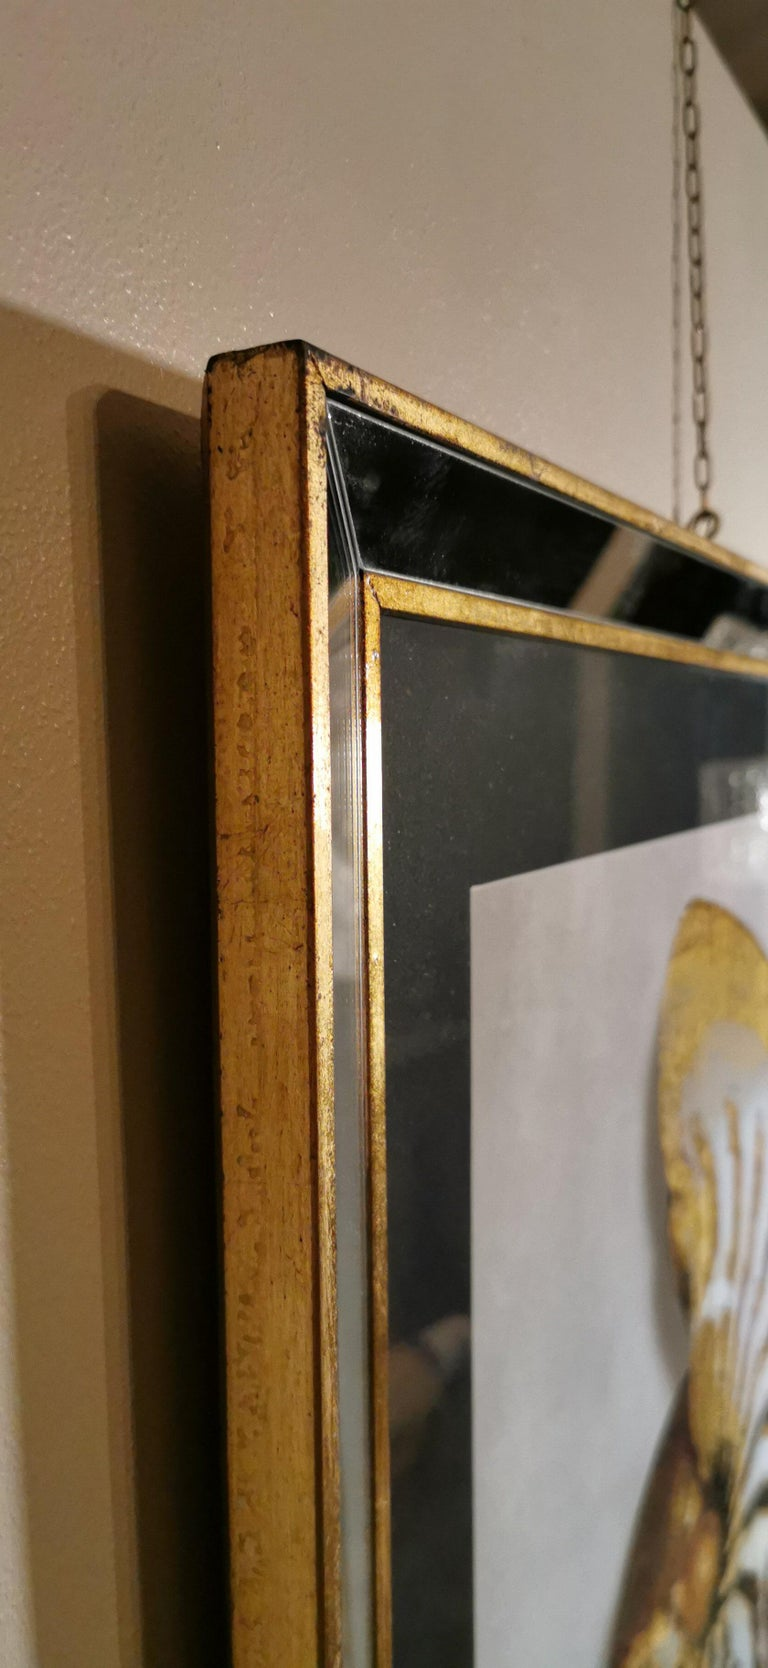 Contemporary Italian Golden Shell Print, Gilded Wood Frame with Mirror '2 of 4' For Sale 1